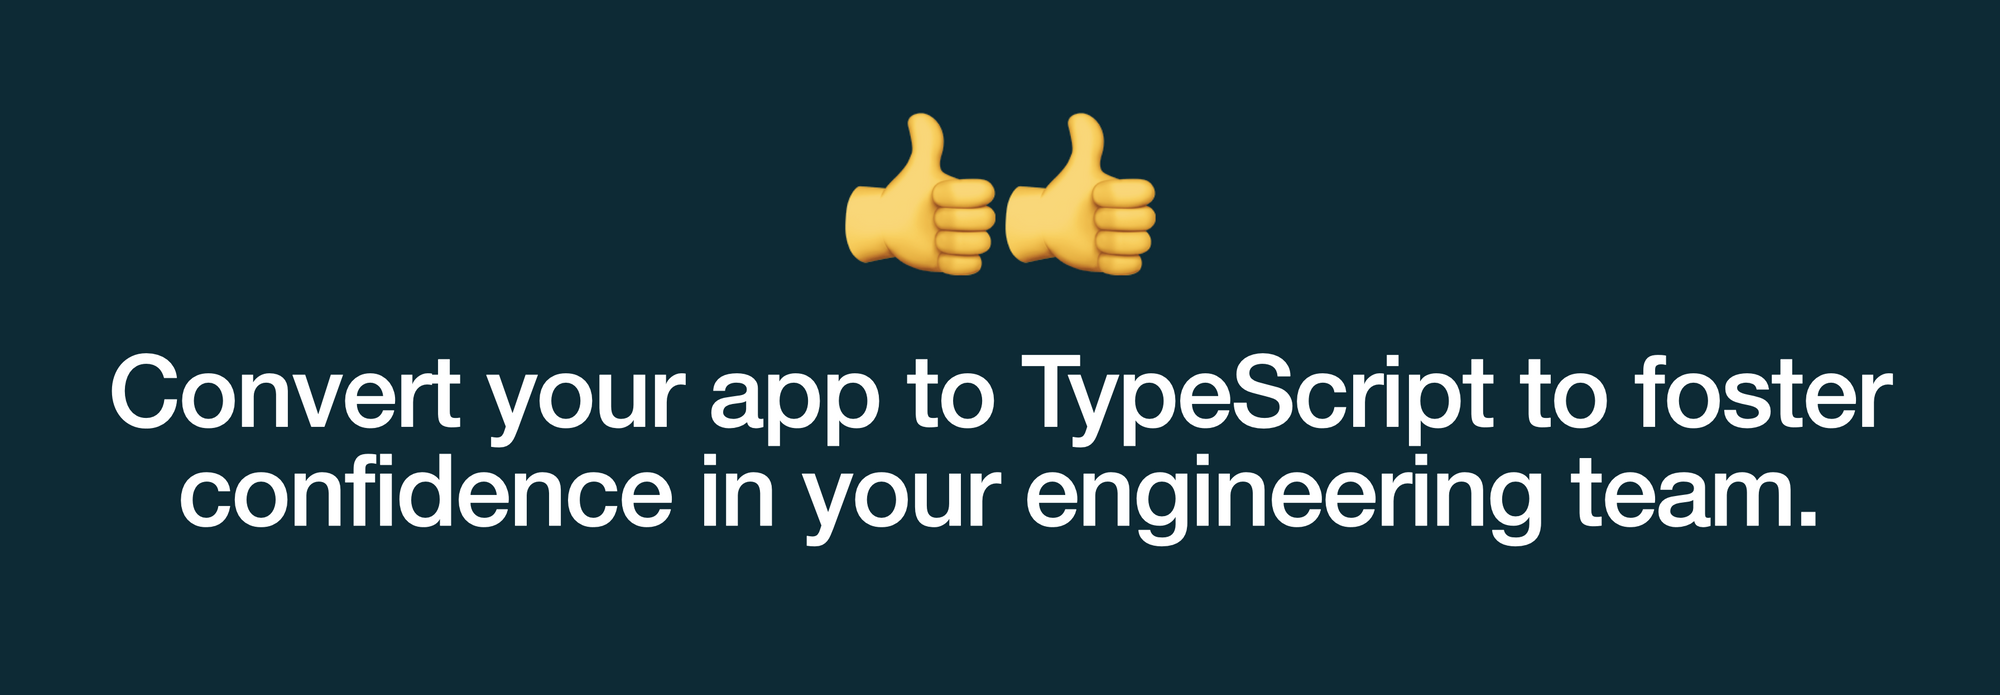 Convert your app to TypeScript to foster confidence in your engineering team.